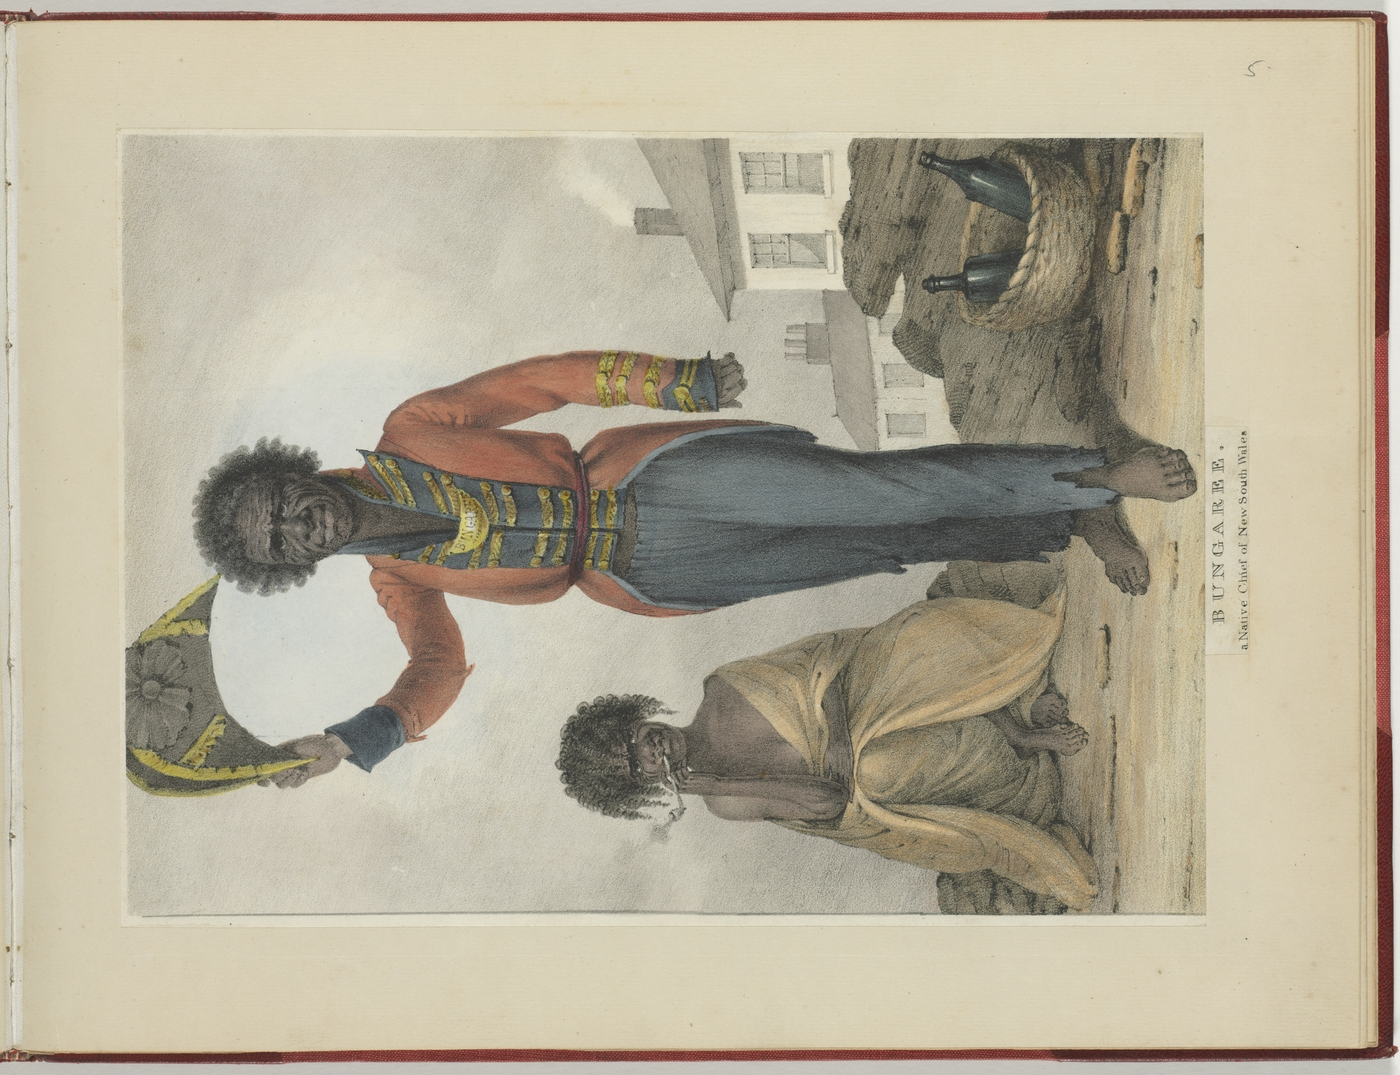 Bungaree. a Native Chief of New South Wales by Augustus Earle, hand-coloured lithograph, published in his Views in New South Wales and Van Diemens Land, 1830